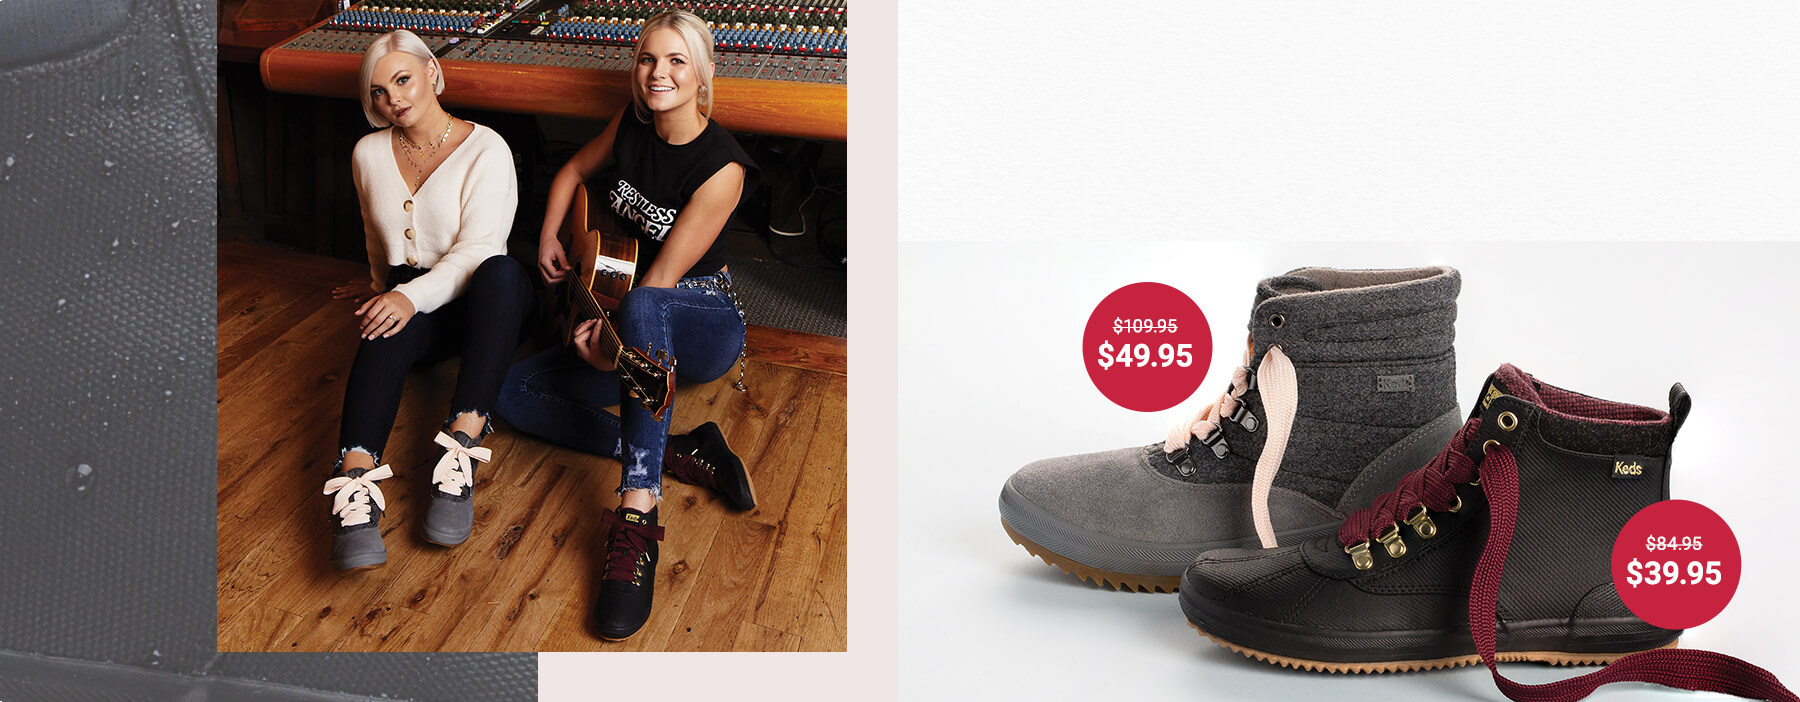 Boots marked down by over 50%.